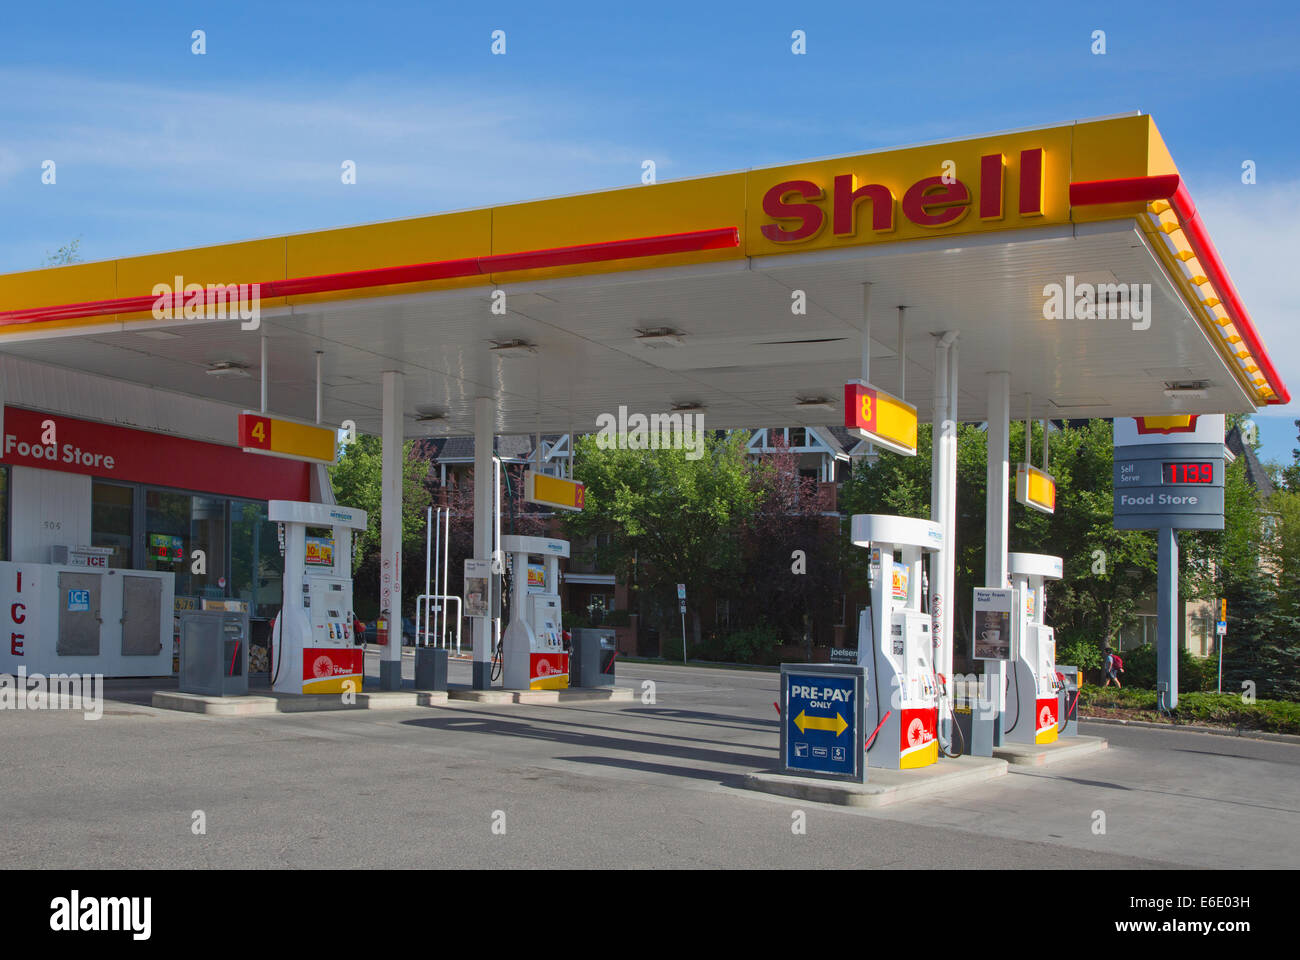 Shell service station with sign showing the price per liter in Canadian dollars Stock Photo